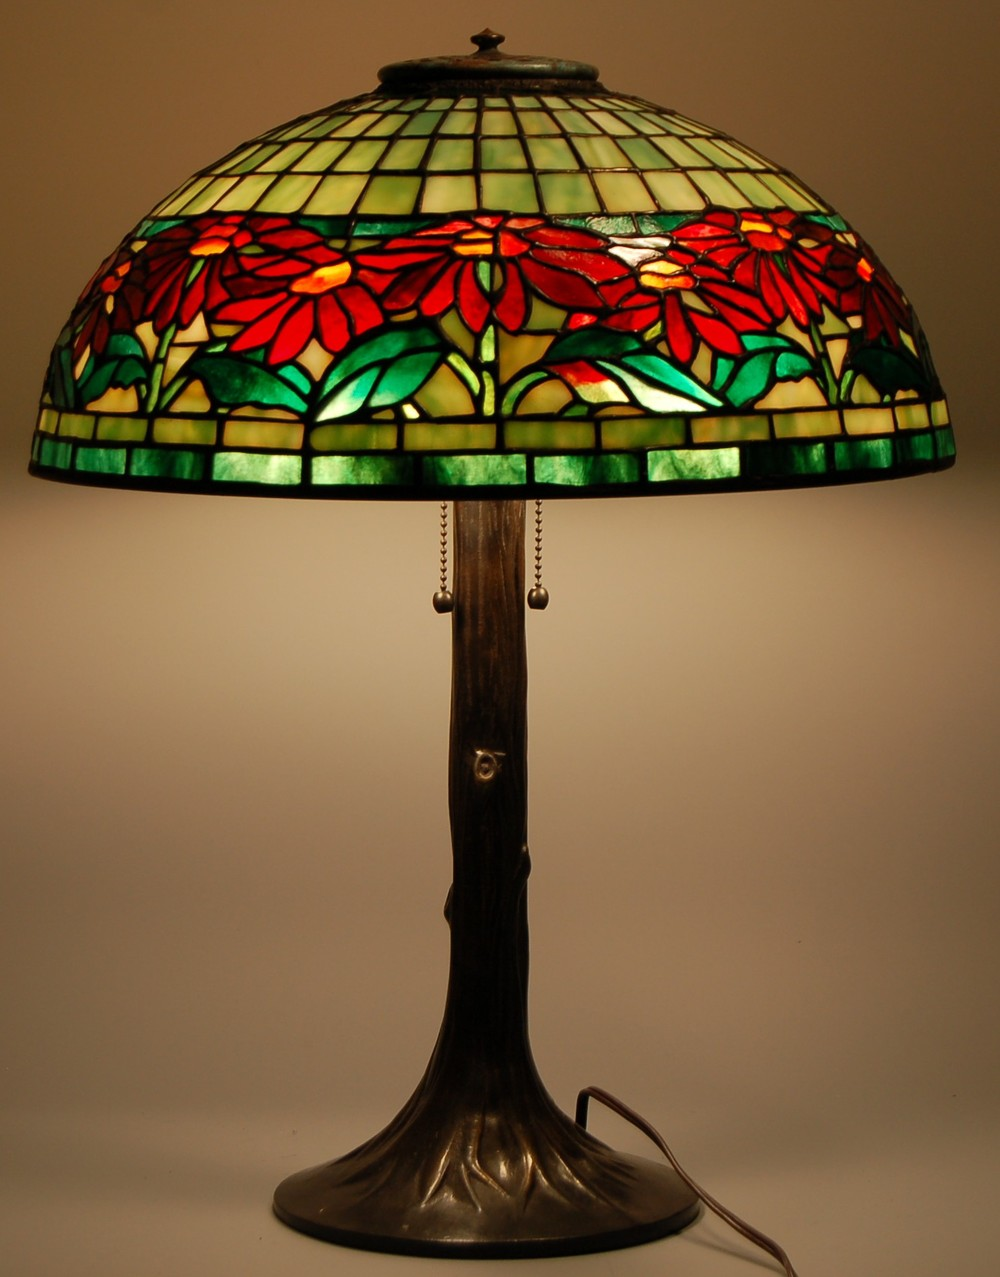 Tiffany lamps – glass art for the home